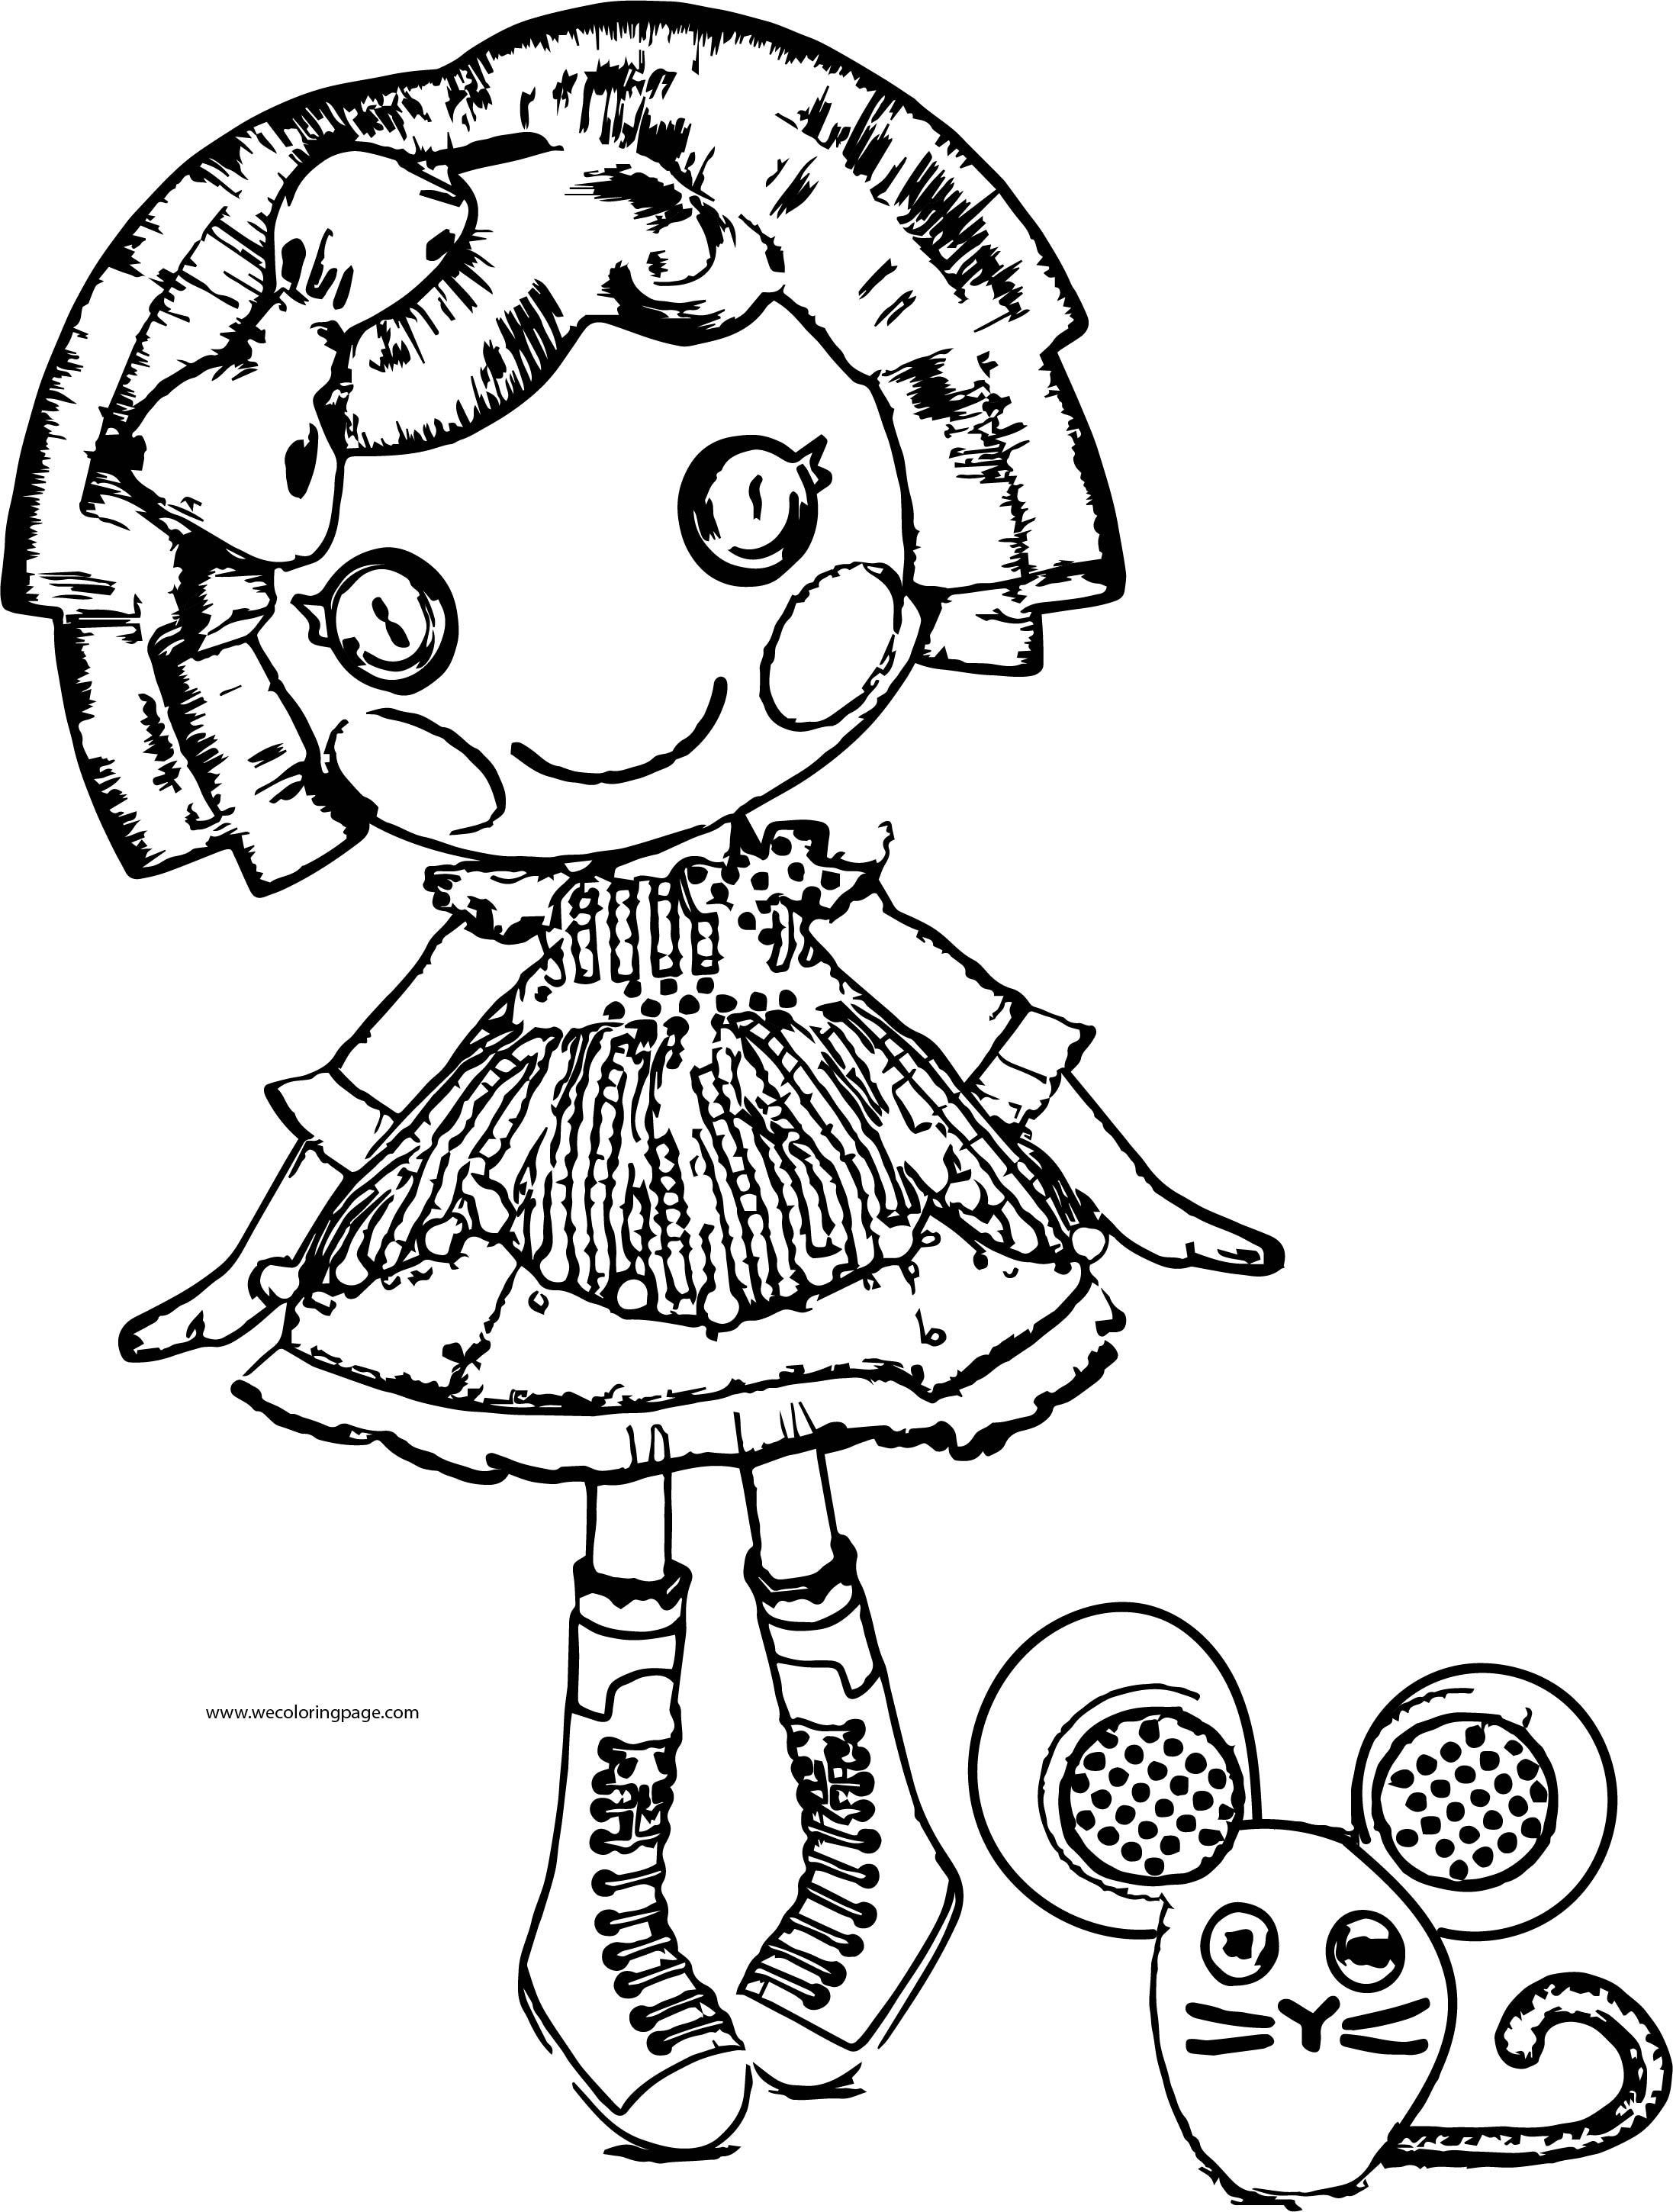 Lll Lalaloopsy Mouse Coloring Page